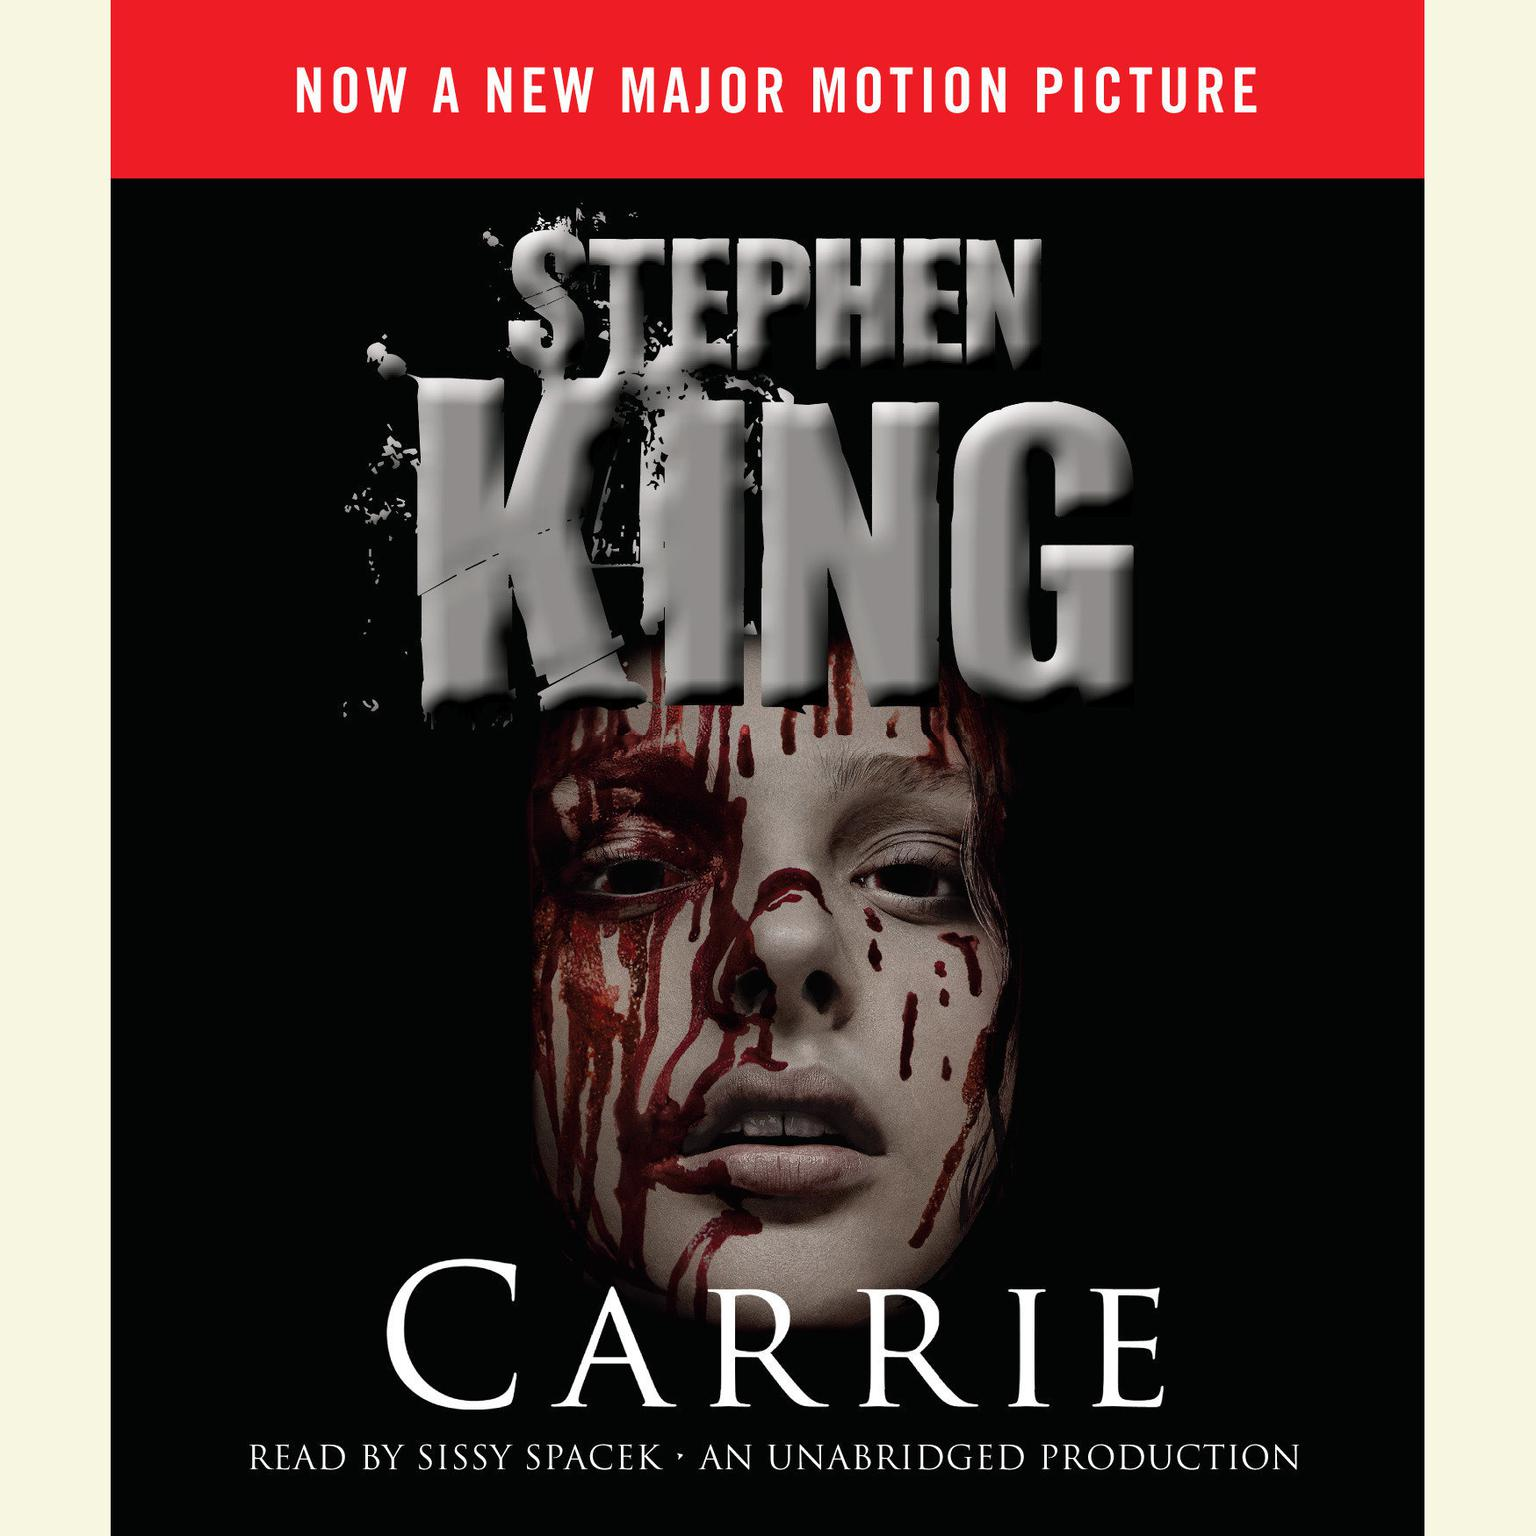 Printable Carrie (Movie Tie-in Edition): Now a Major Motion Picture Audiobook Cover Art